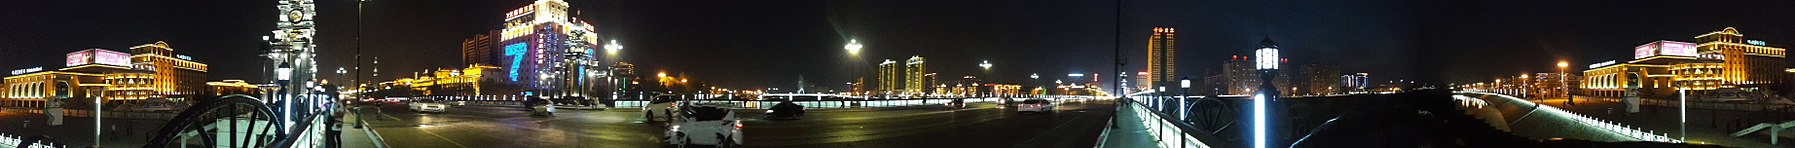 Panorama Hailar.Hailar river by night.jpg